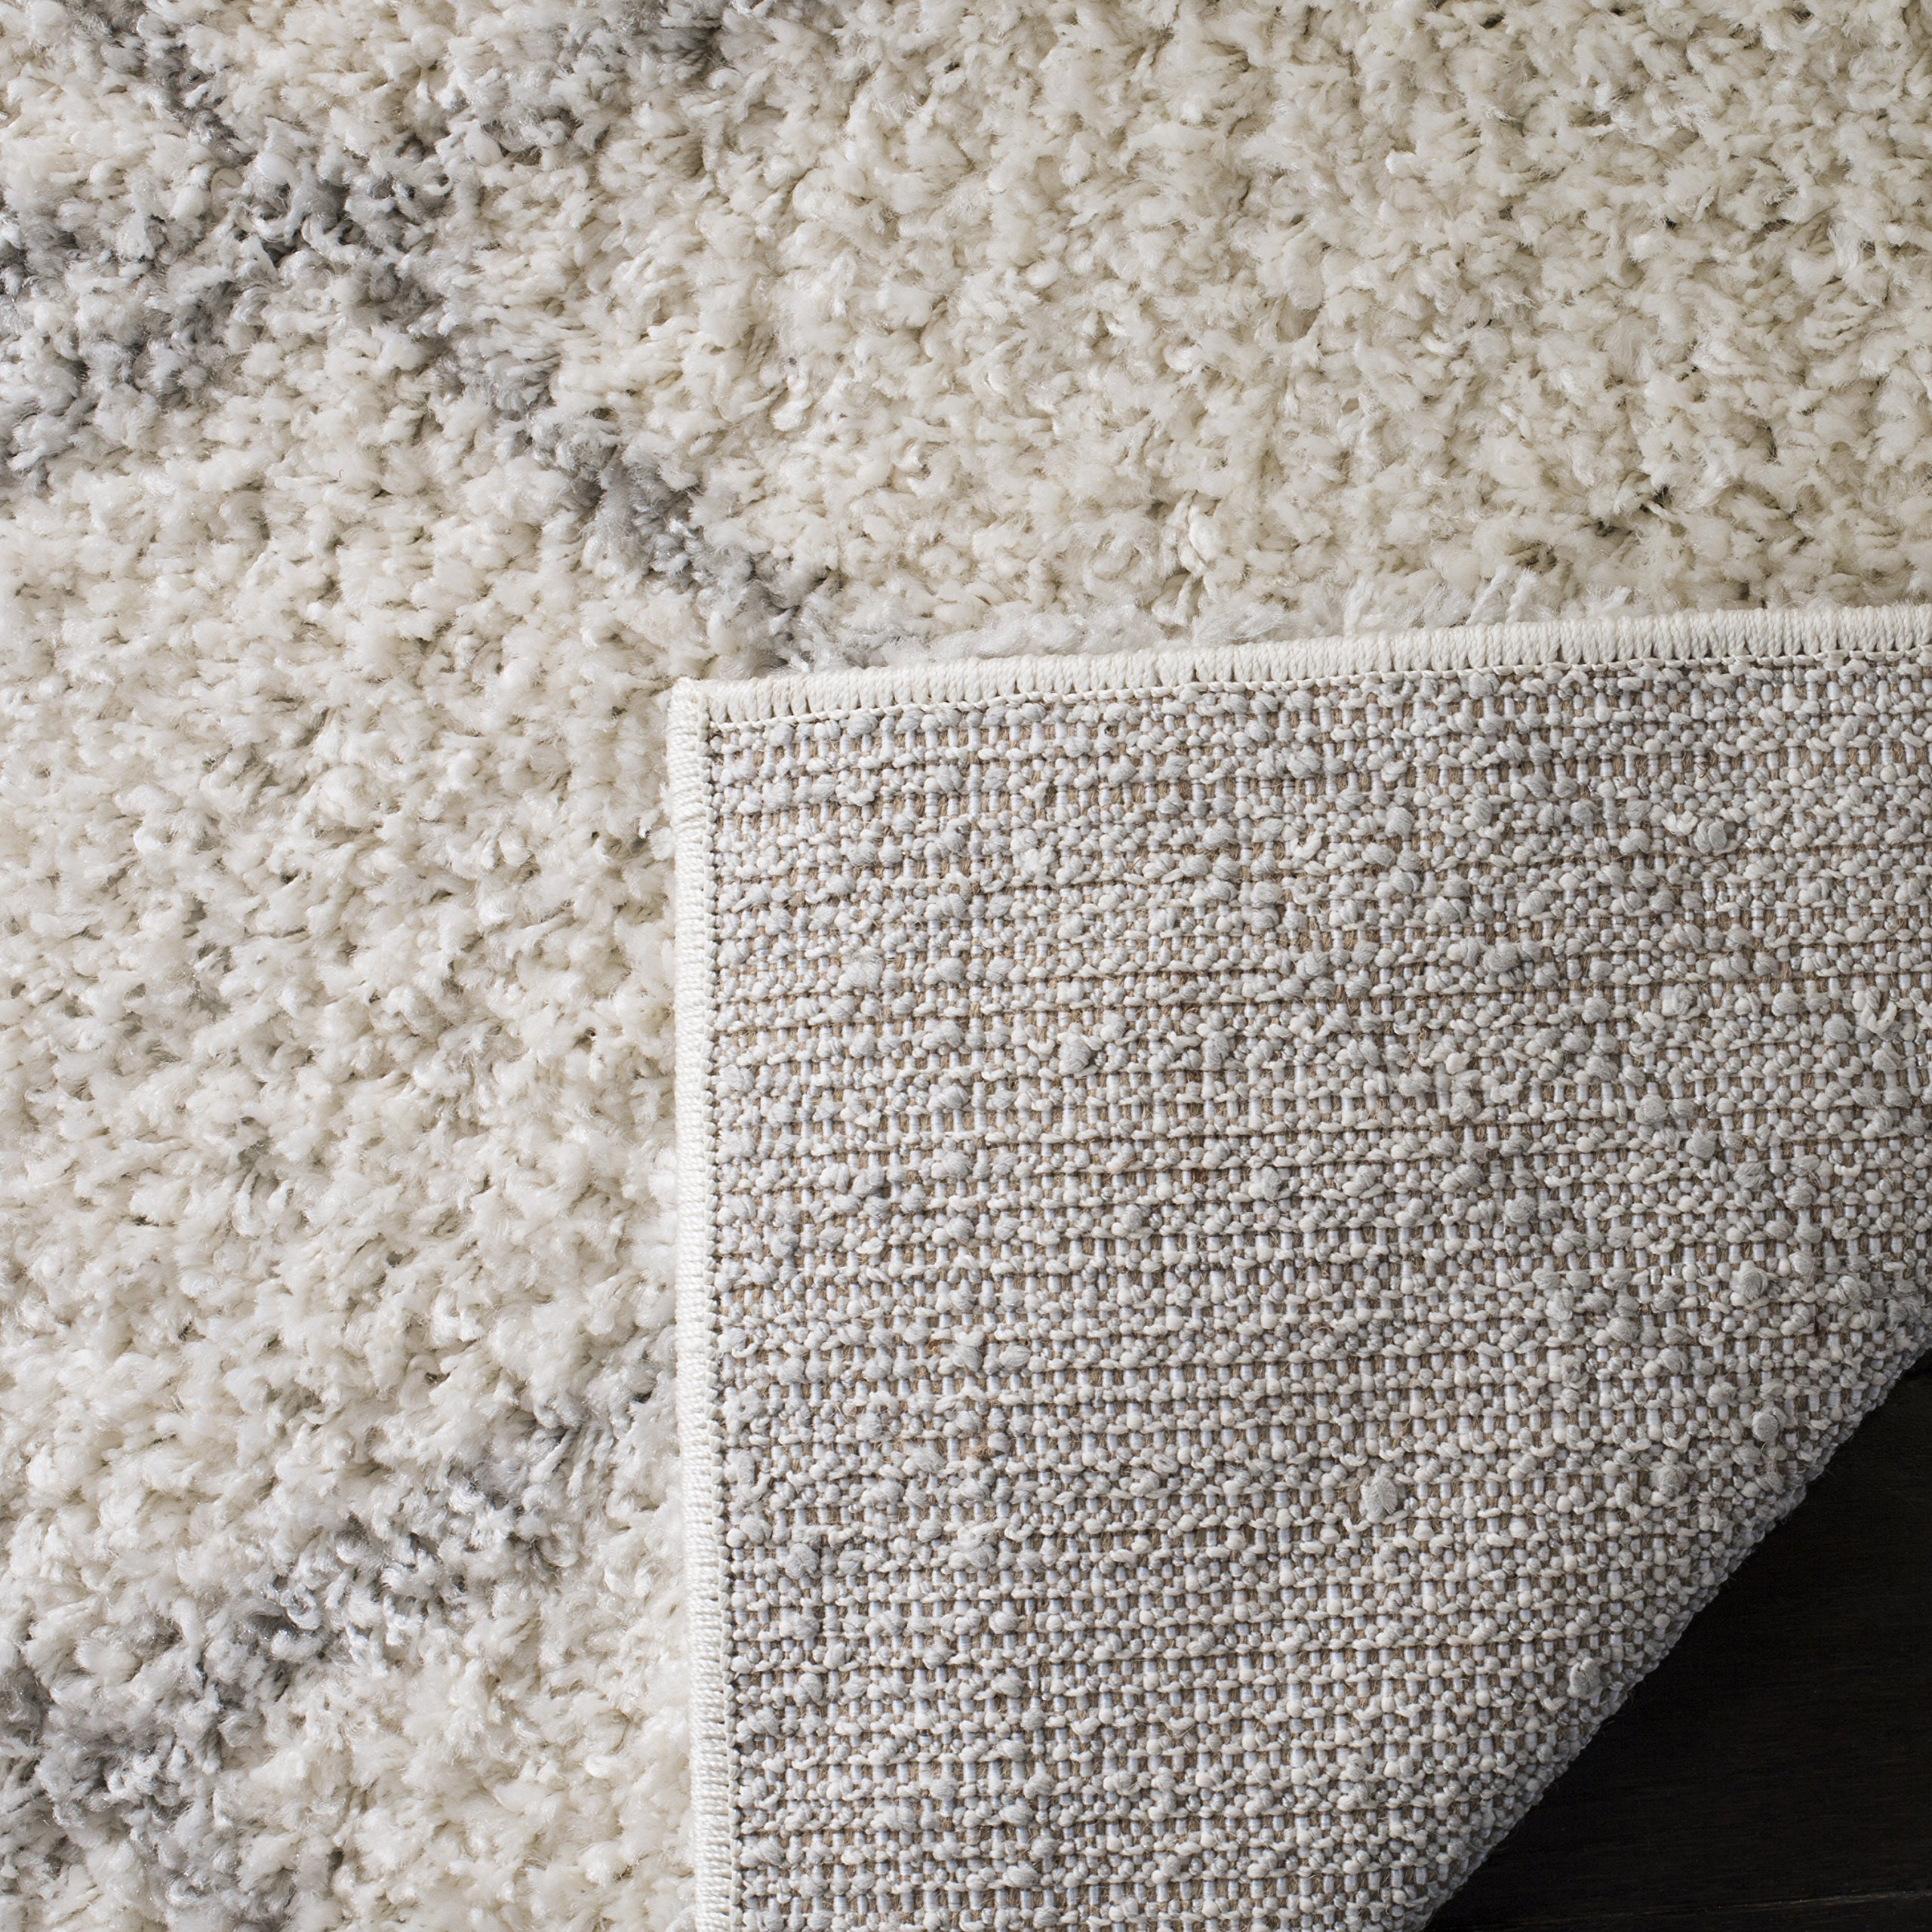 Safavieh Arizona Shag Collection ASG751G Ivory and Grey Area Rug (8' x 10') by Safavieh (Image #4)